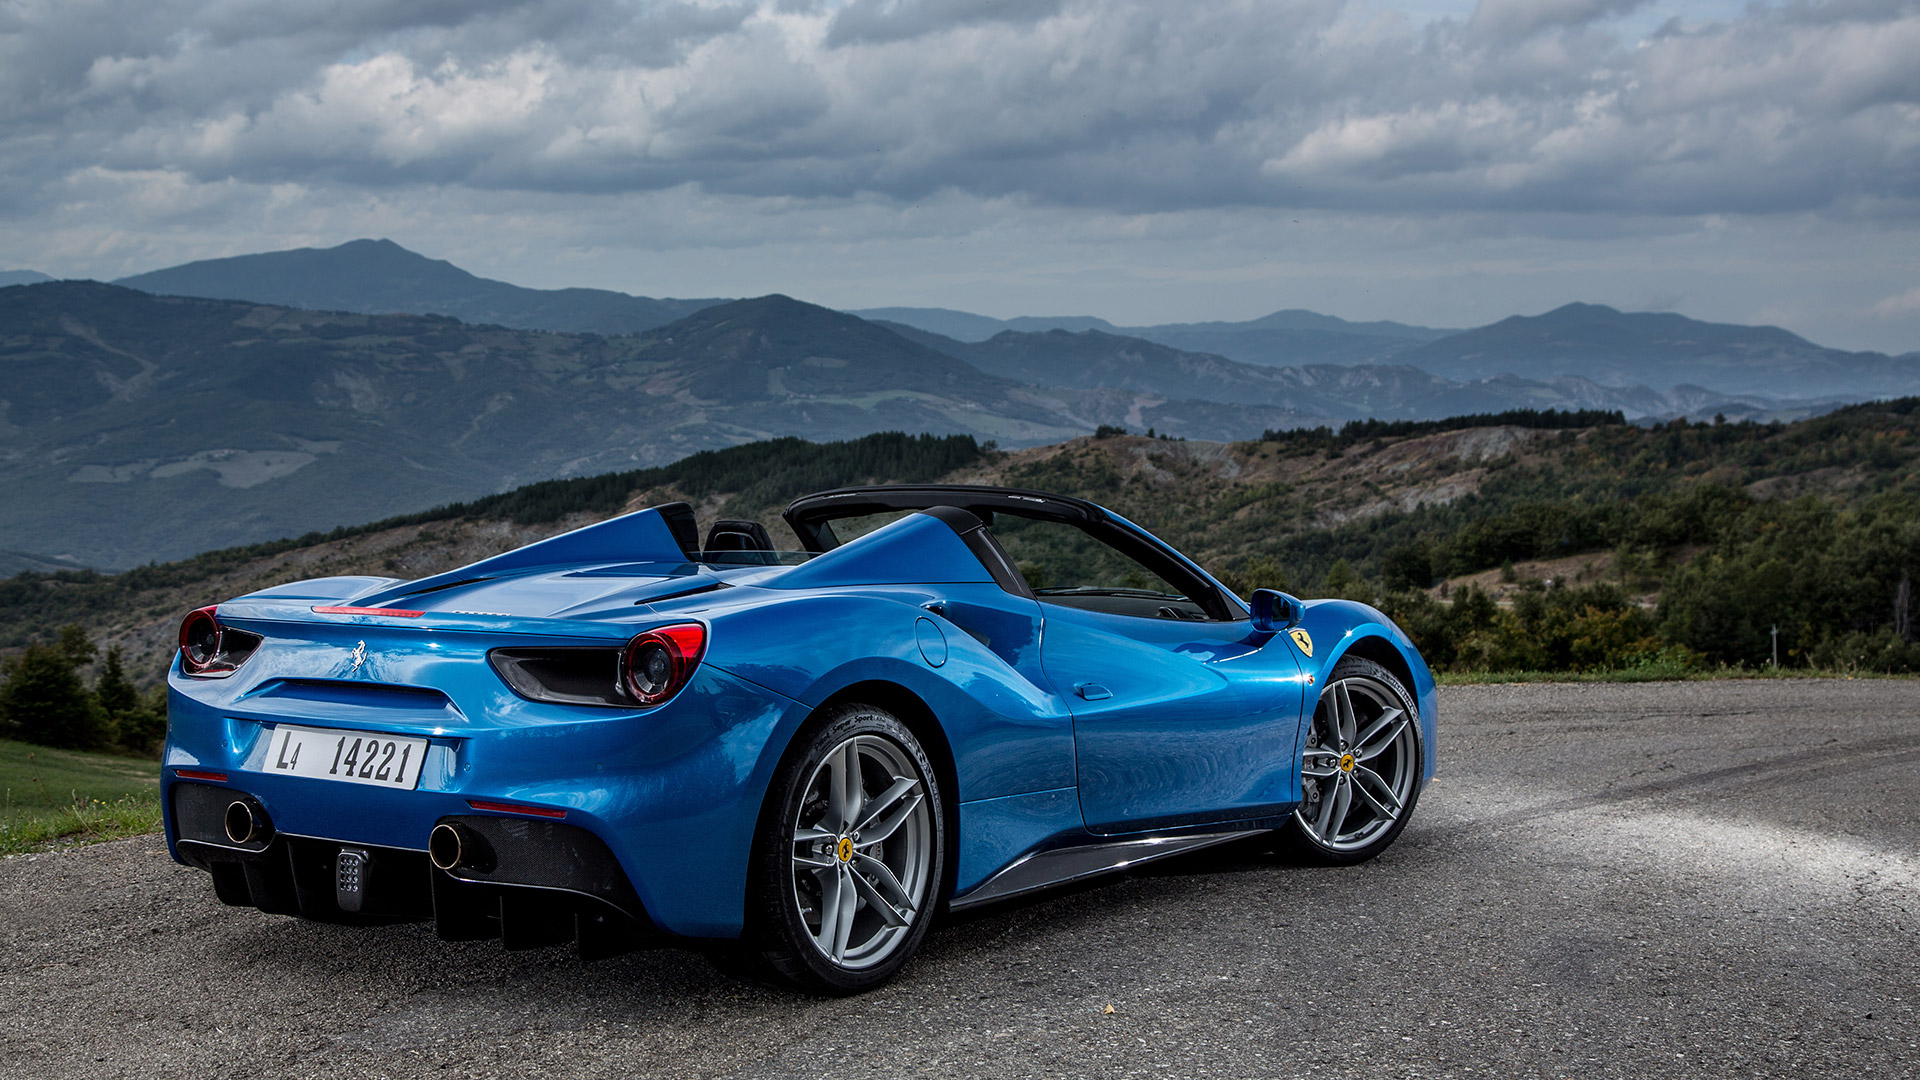 Ferrari 488 2017 Spider Price Mileage Reviews Specification Gallery Overdrive